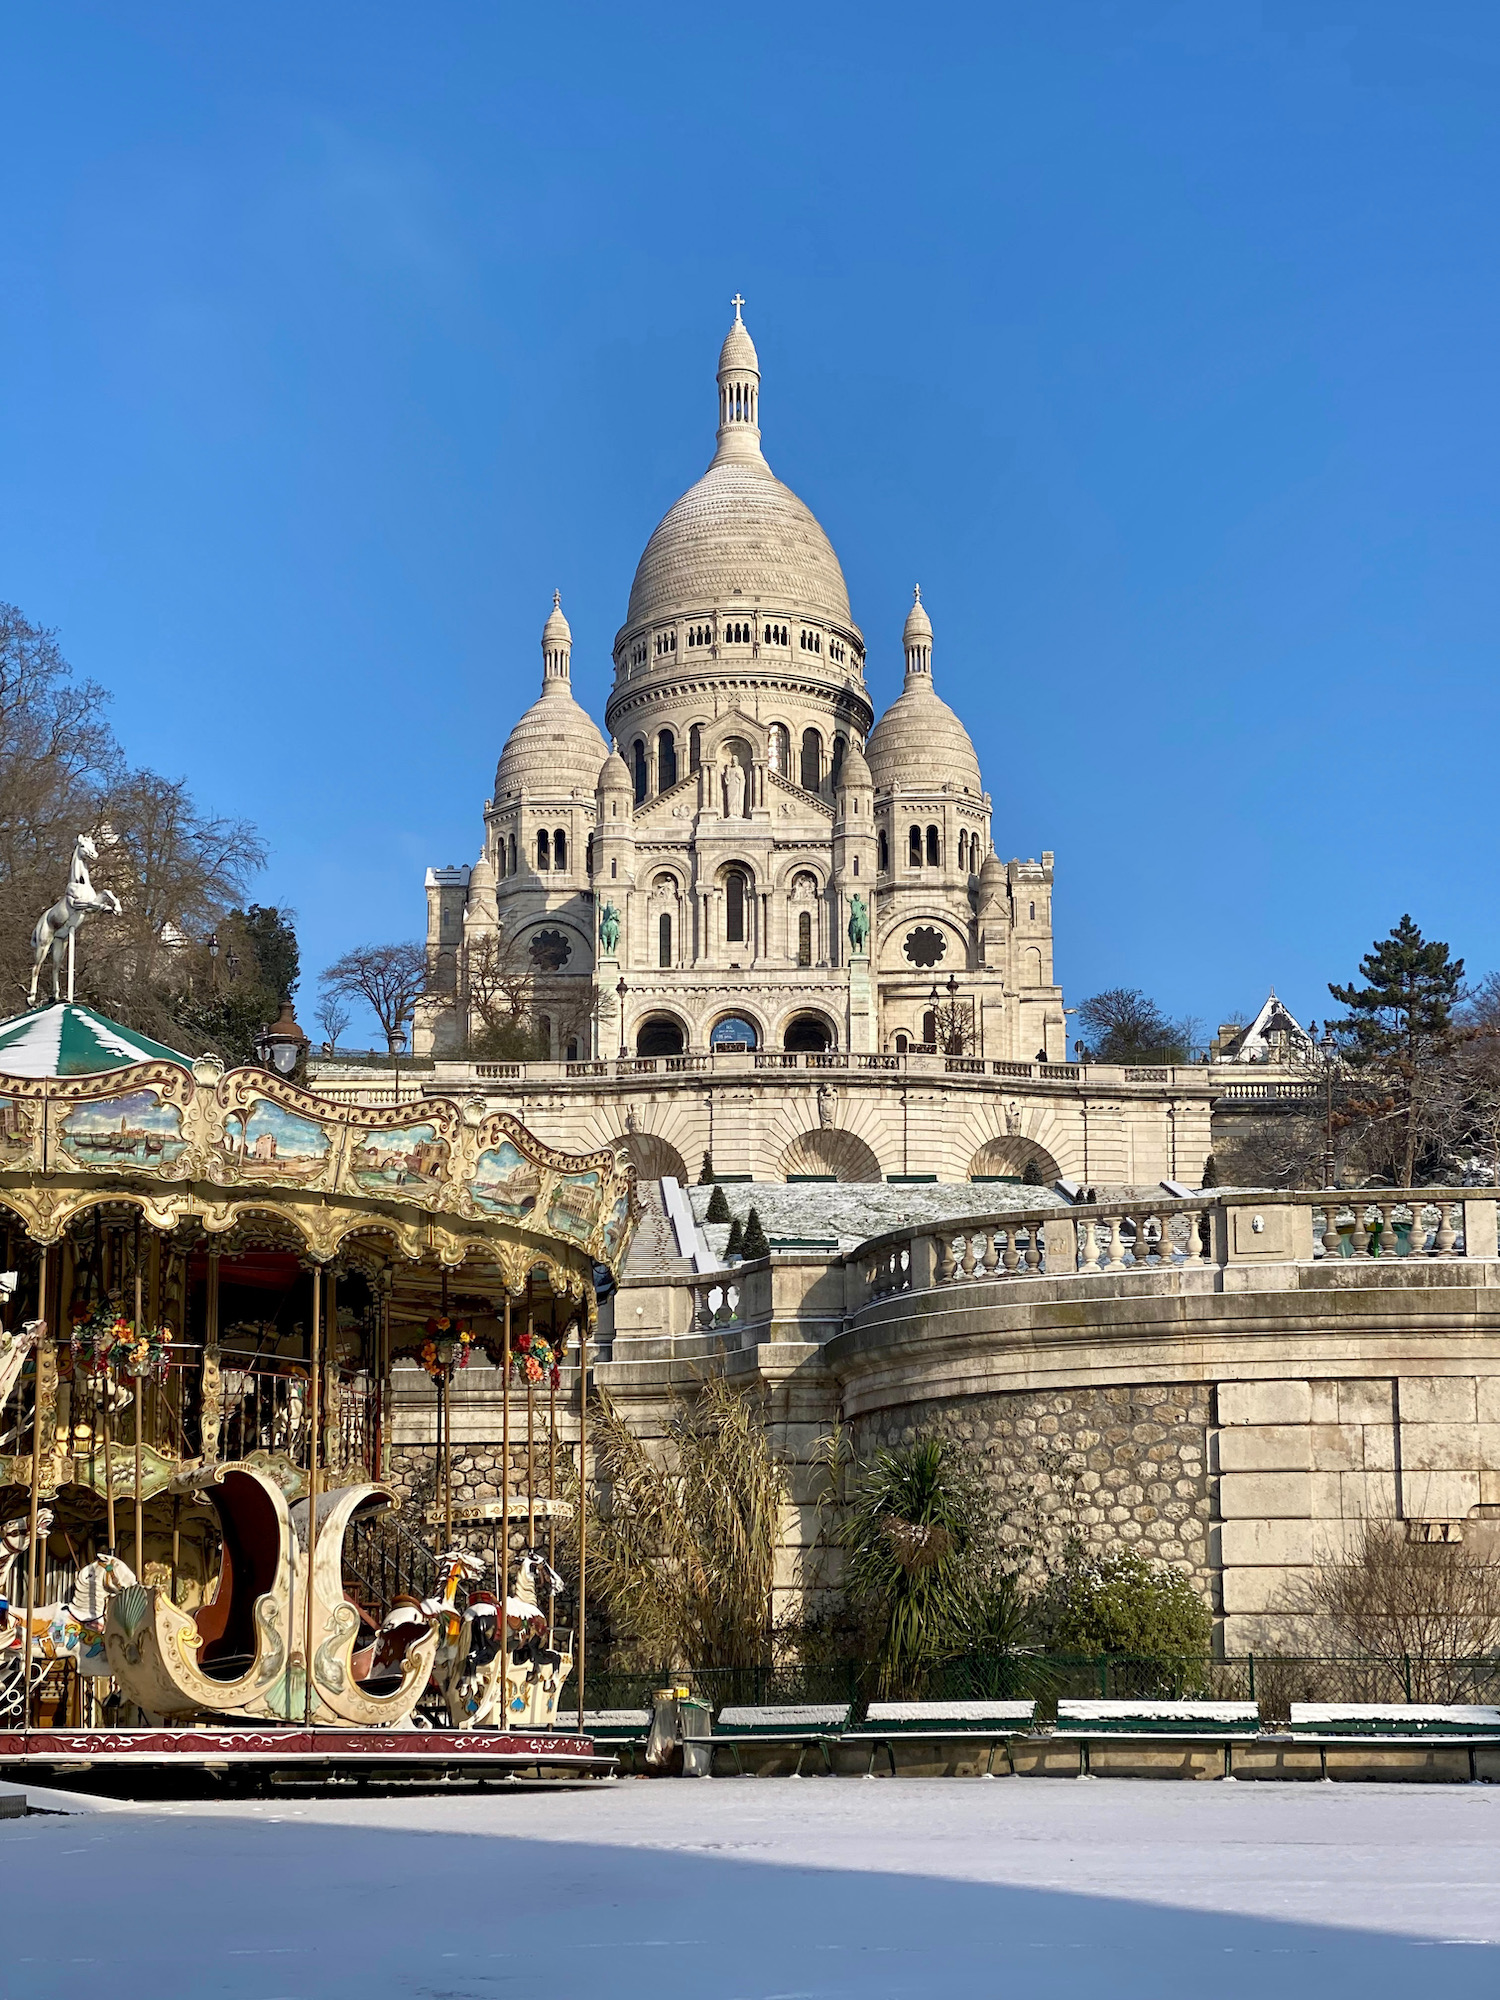 blue sky and sacre coeur in the snow